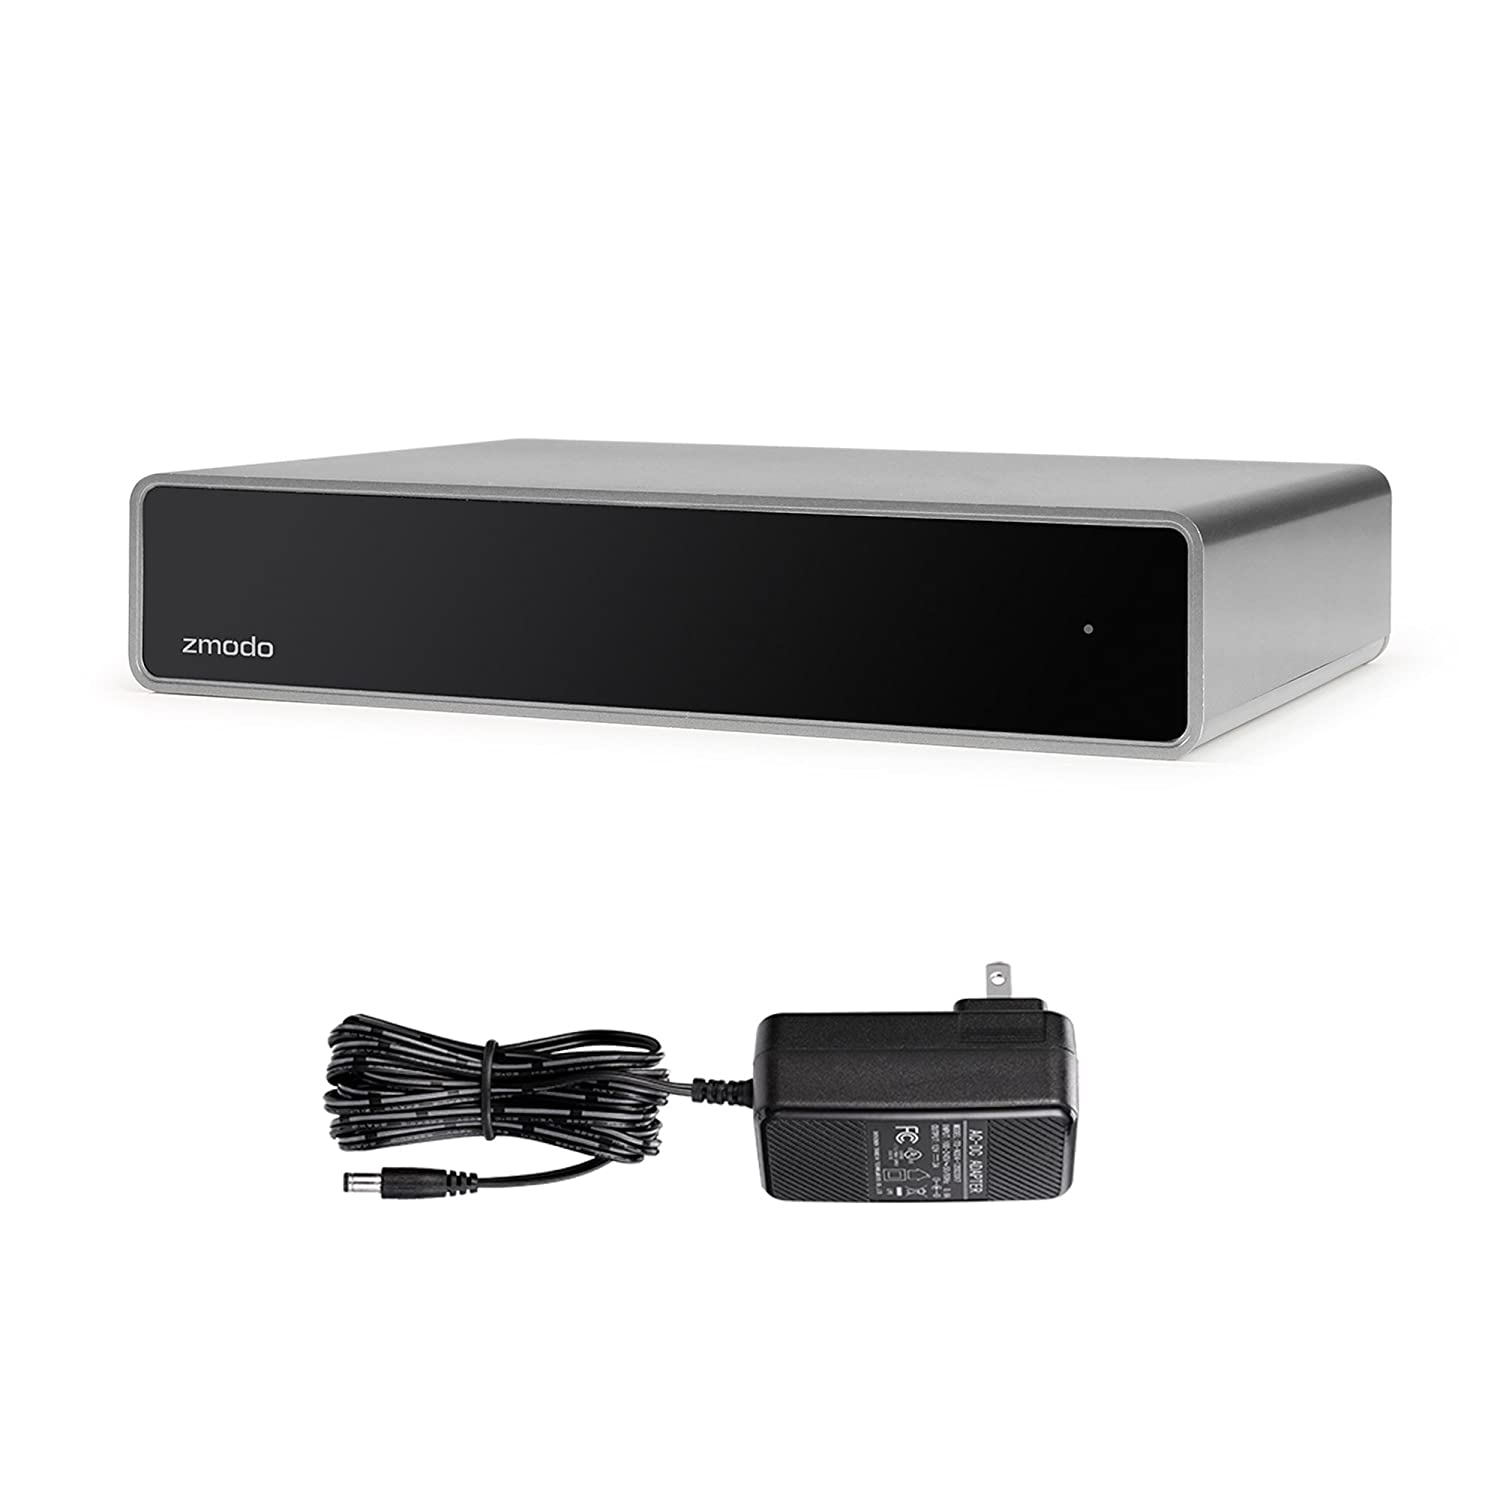 Zmodo 1080p NVR with 1TB Hard Drive